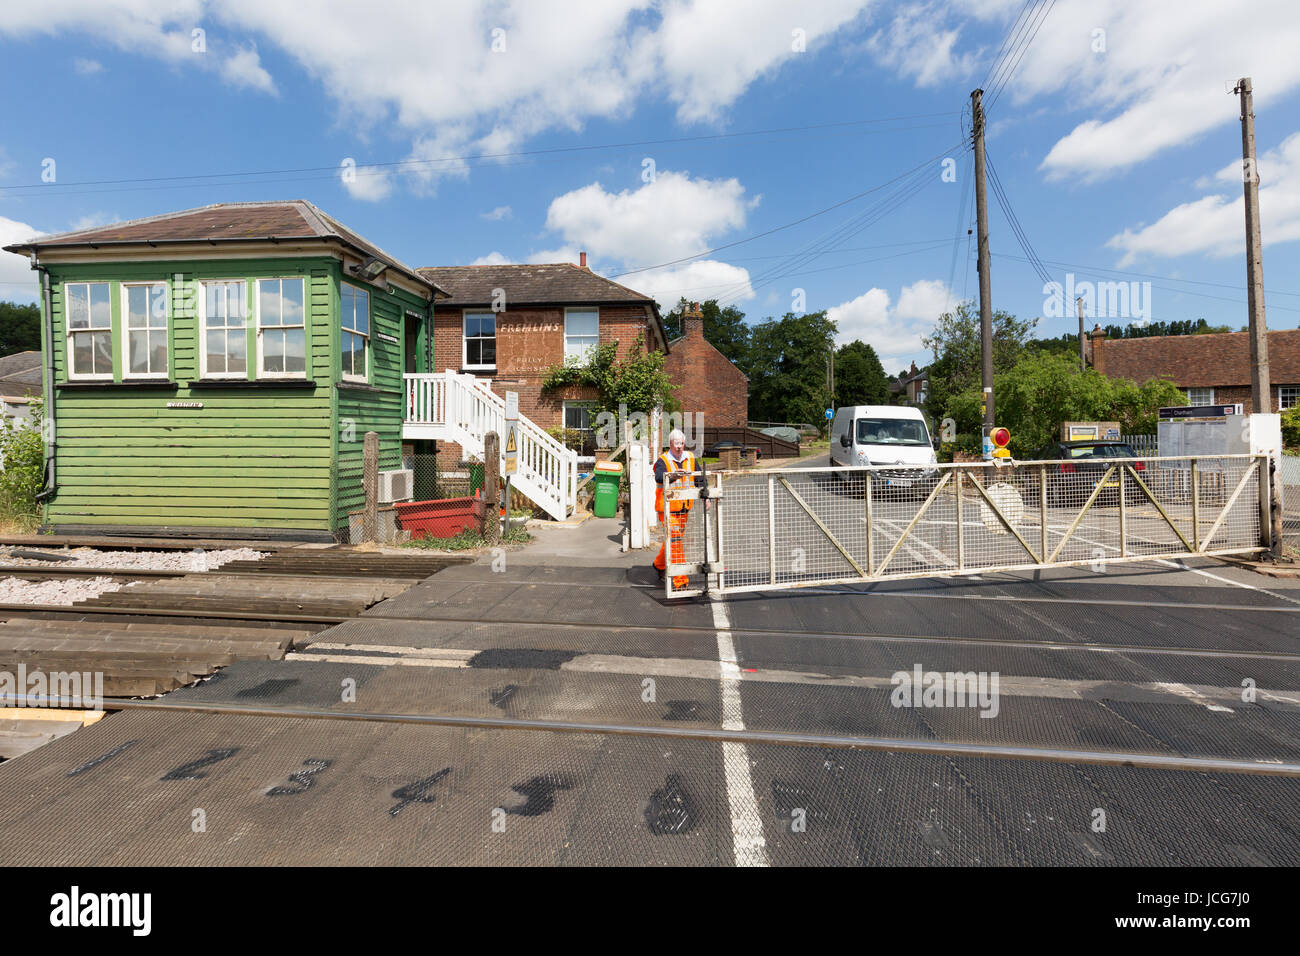 Railway worker opening the gates at a Manual level crossing, Chartham, Kent England UK - Stock Image